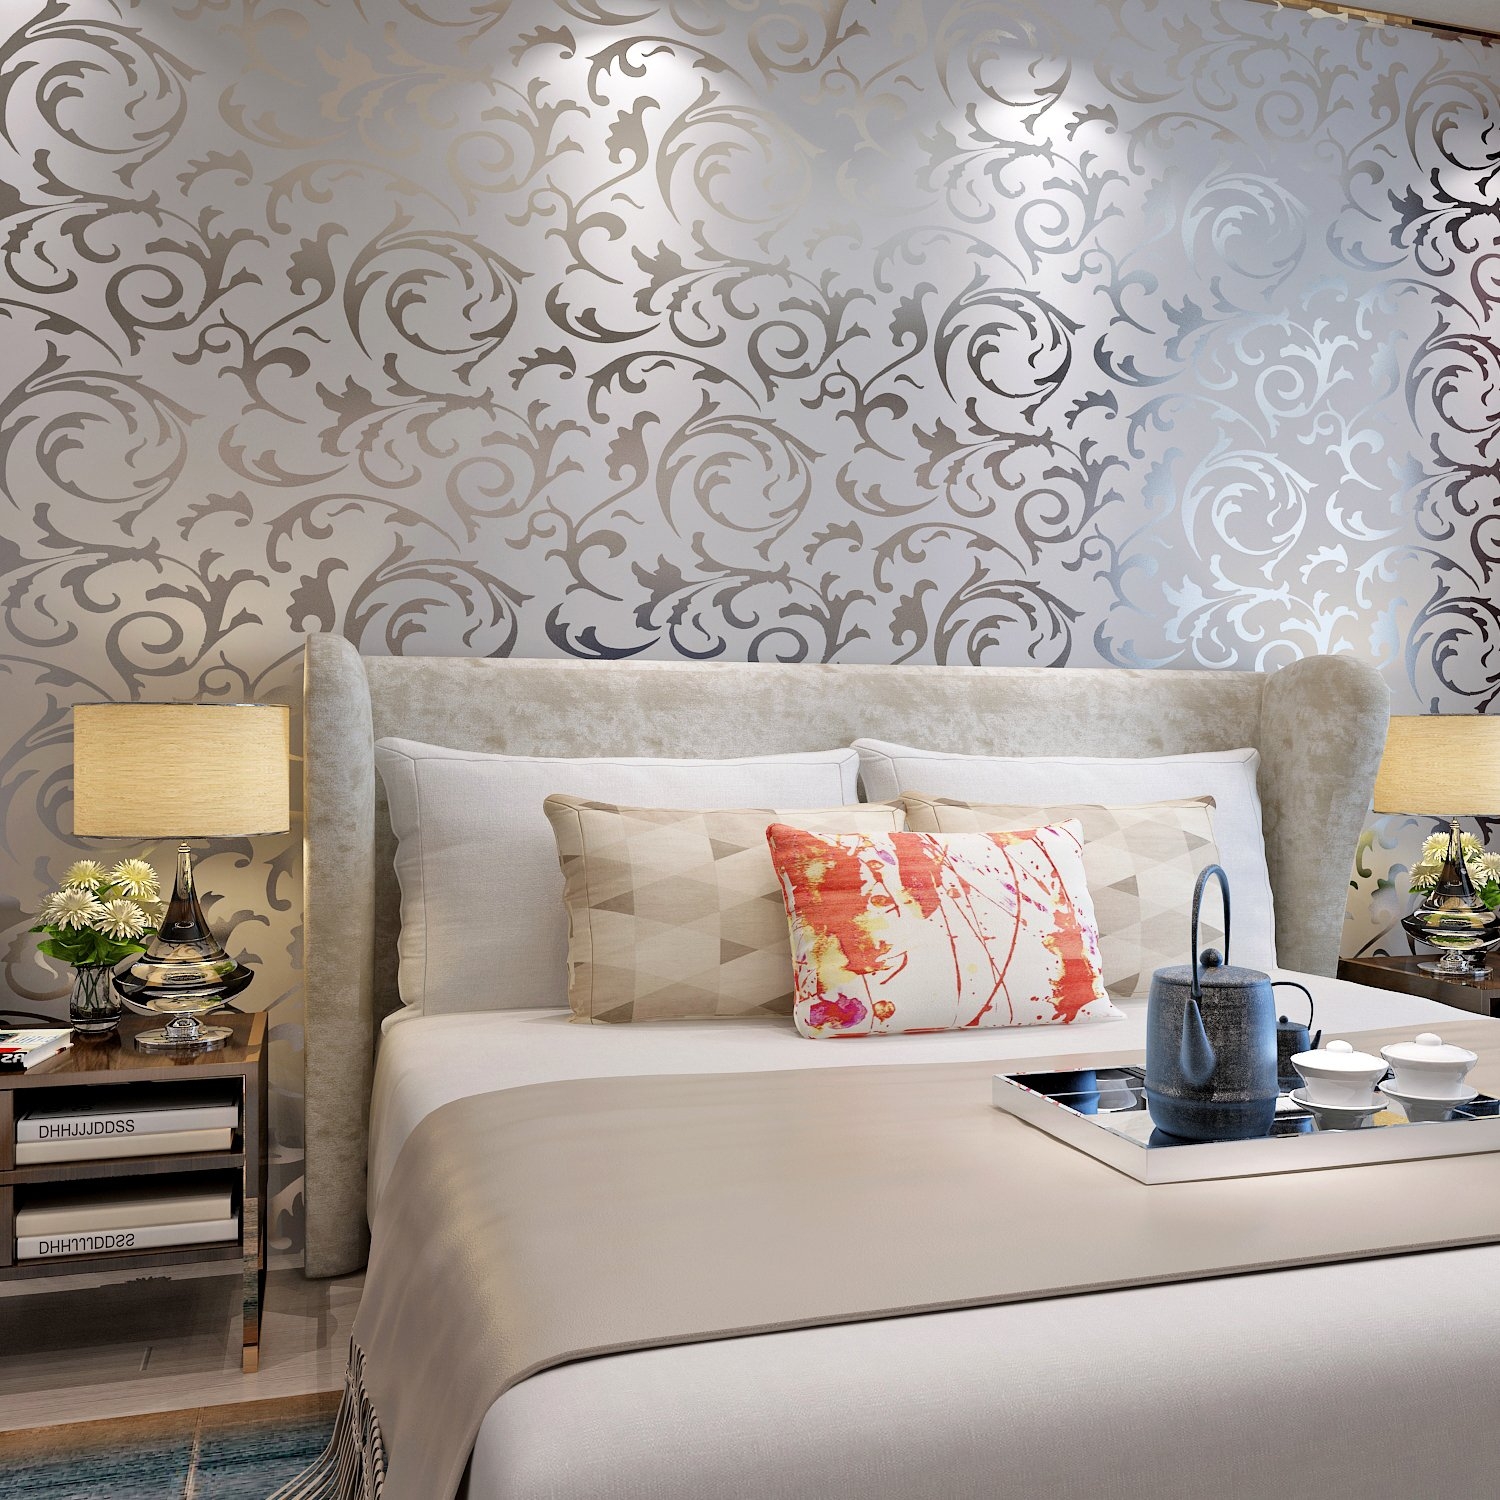 HANMERO Victorian Damask Embossed Textured Pattern Vinyl Wallpaper Environmental Protection Long Murals Rolls for Living Room/Bedroom/TV Background Home Decor- Silver Gray 20.86'' x 393.7''